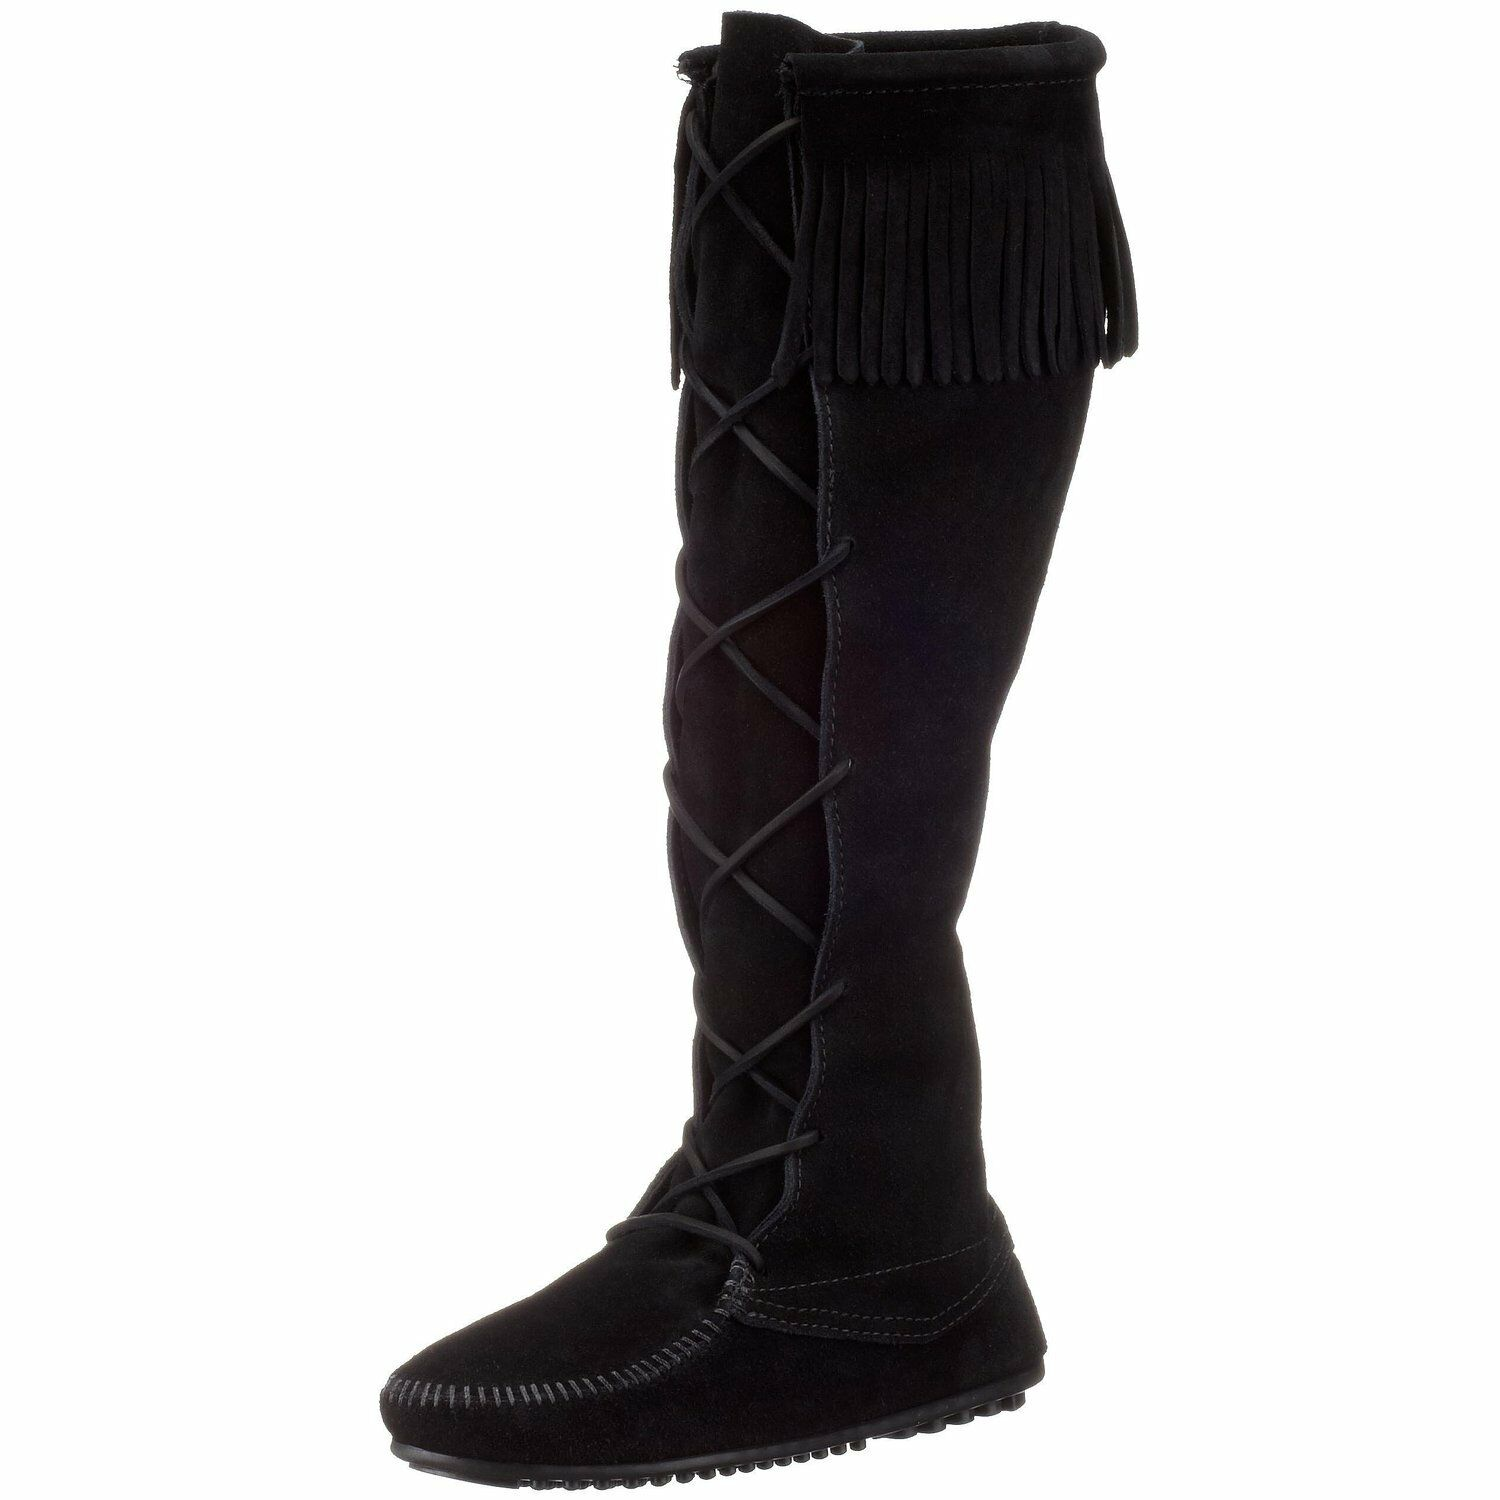 Women's Women's Women's Minnetonka Front Lace Knee-High Boot Black 1429 bc2da3